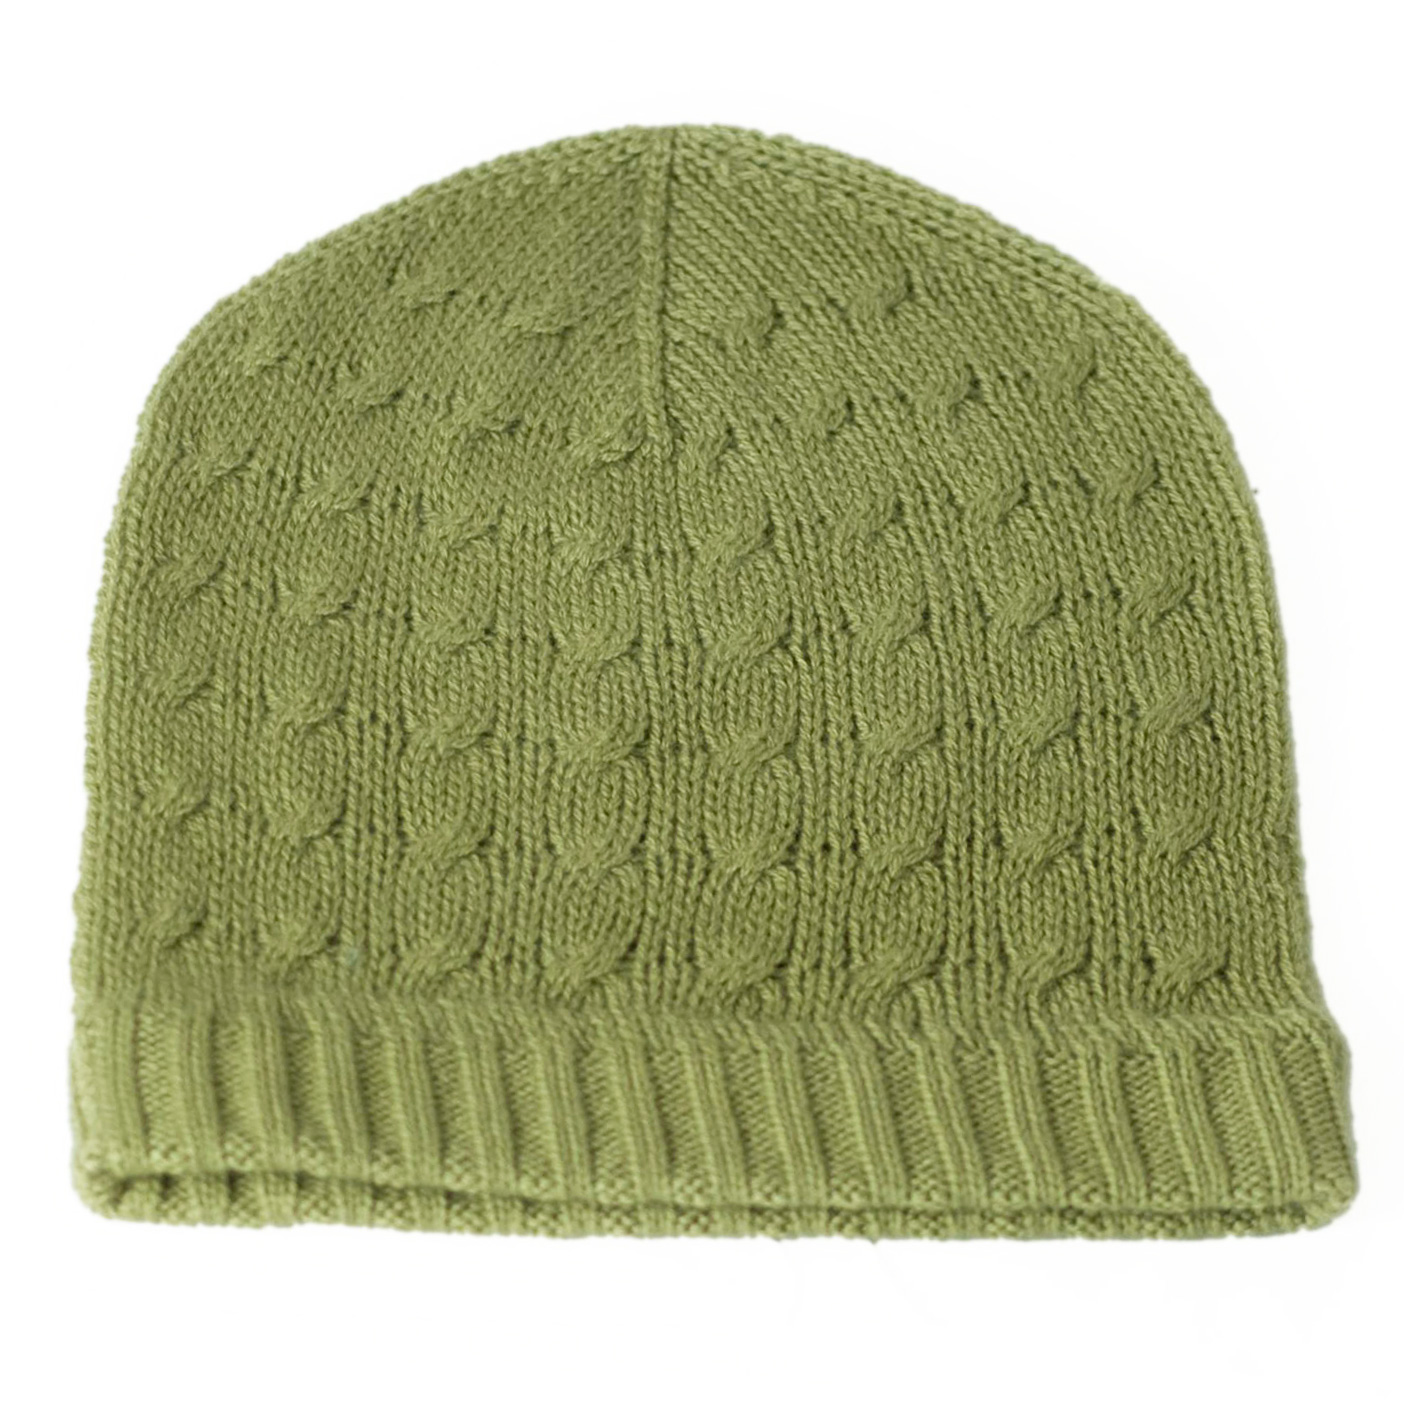 Cabled Hat - 100% Cashmere - Khaki